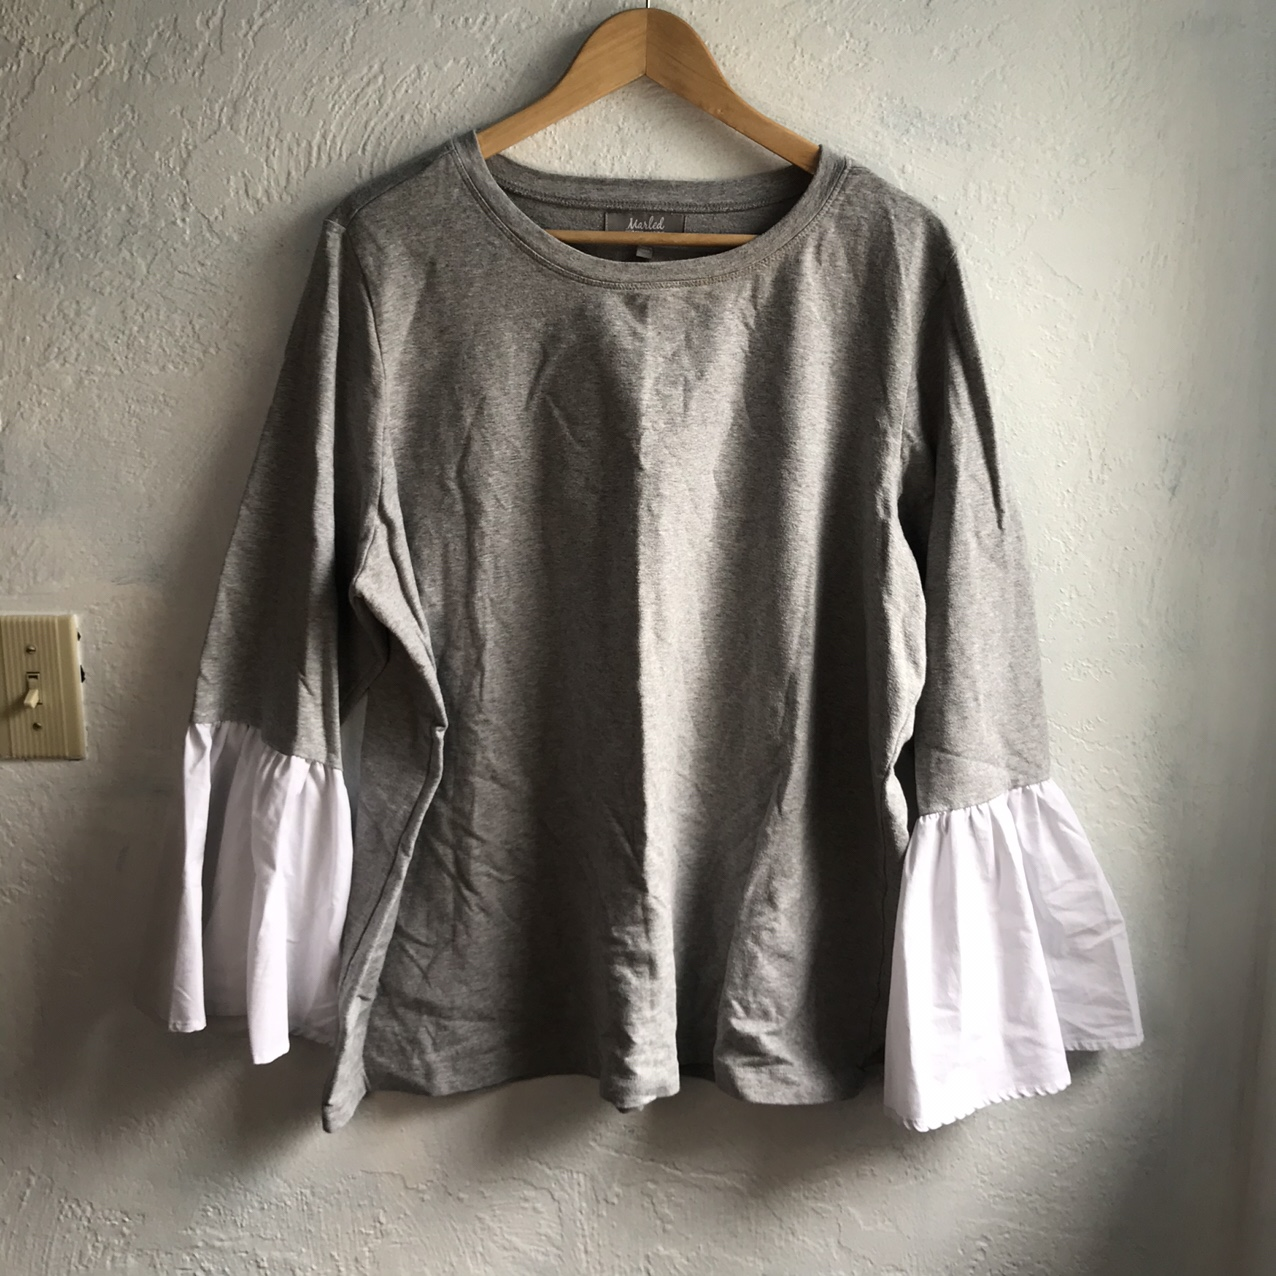 Product Image 1 - Marled Reunited Clothing Gray Bell